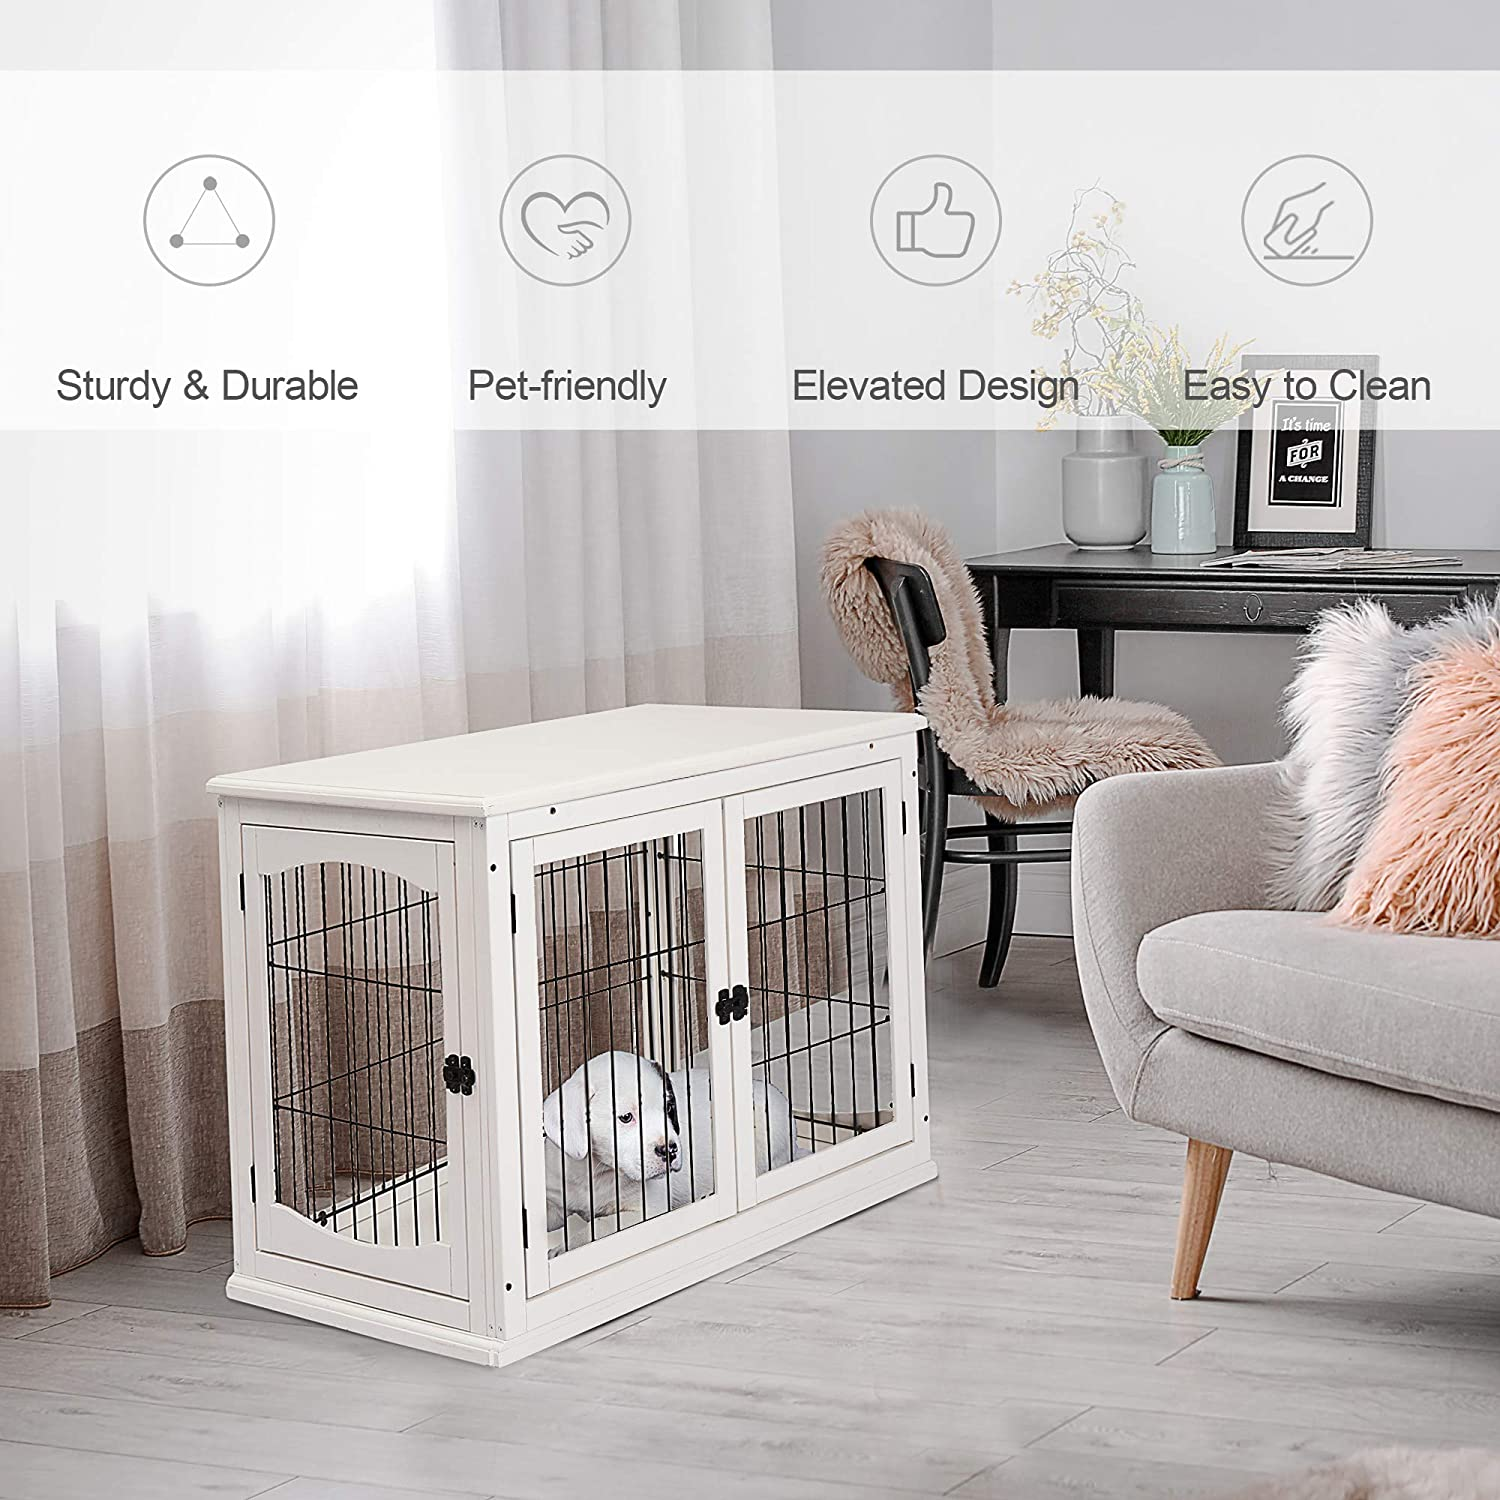 Pawhut Pet Crate End Table Wooden Dog Kennel Cage w//Metal Wire 3 Doors Latches Small Animal House Modern Design Indoor White 58.5 x 81 x 66 cm